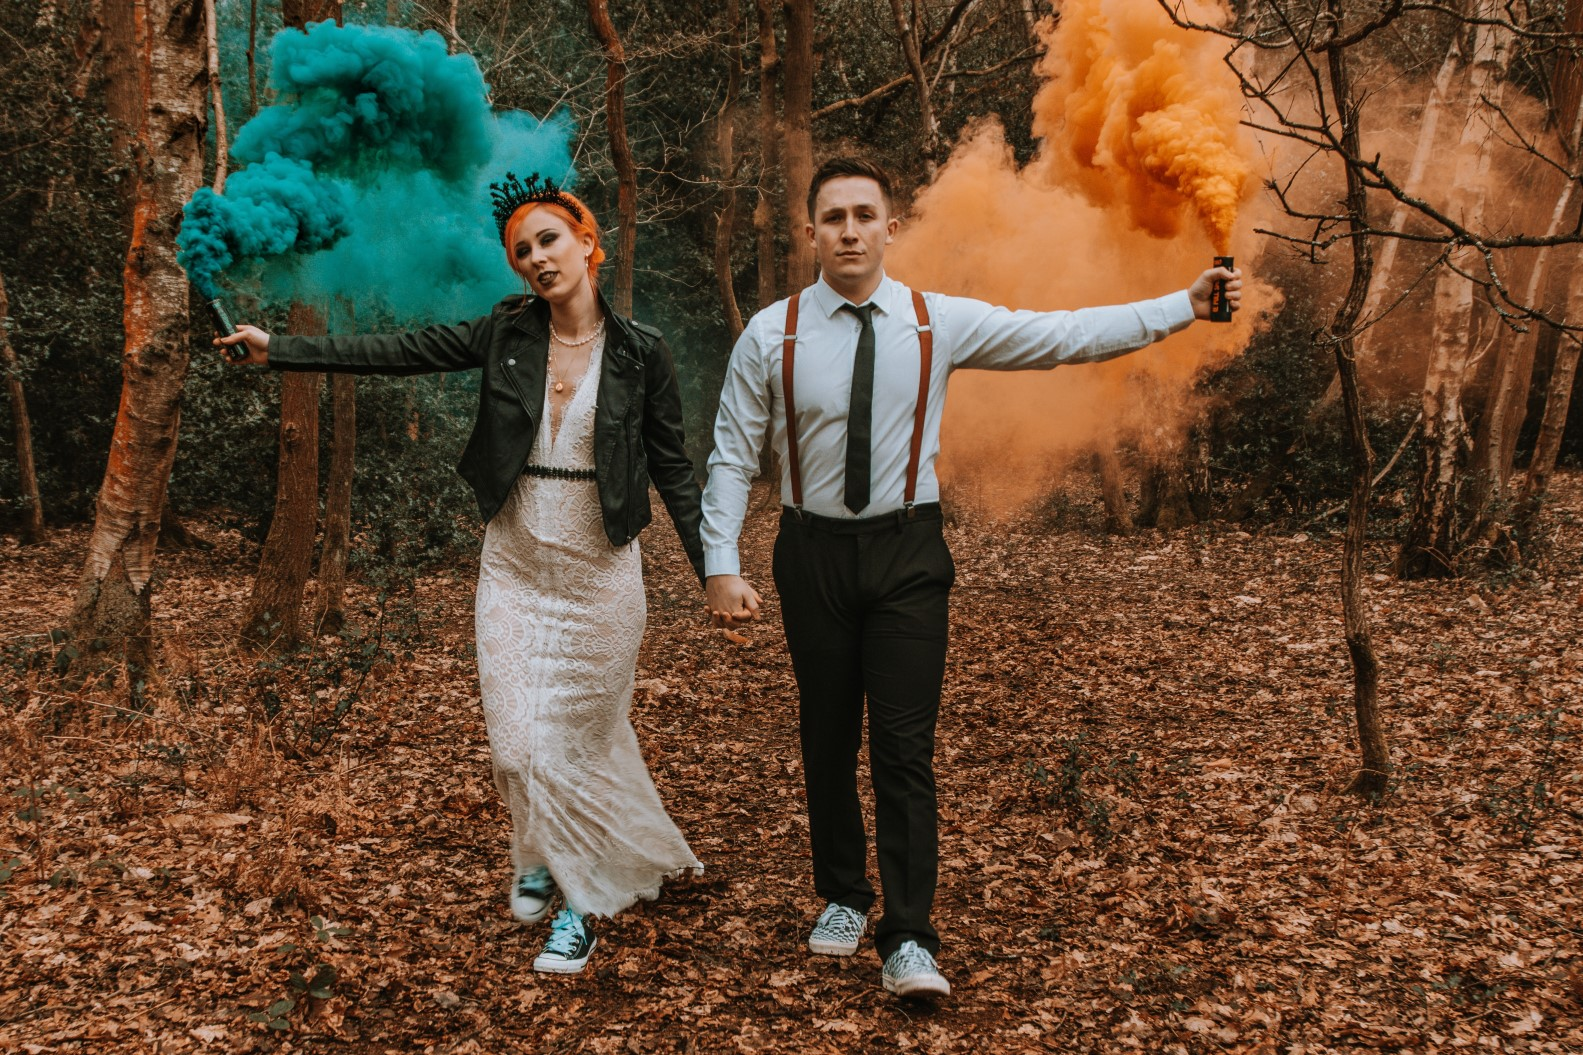 Alternative Forest Wedding - Sammy Leas Retro Emporium -Photography By Wills- alternative wedding - unconventional wedding- edgy woodland wedding- wedding smoke bomb-orange and teal wedding